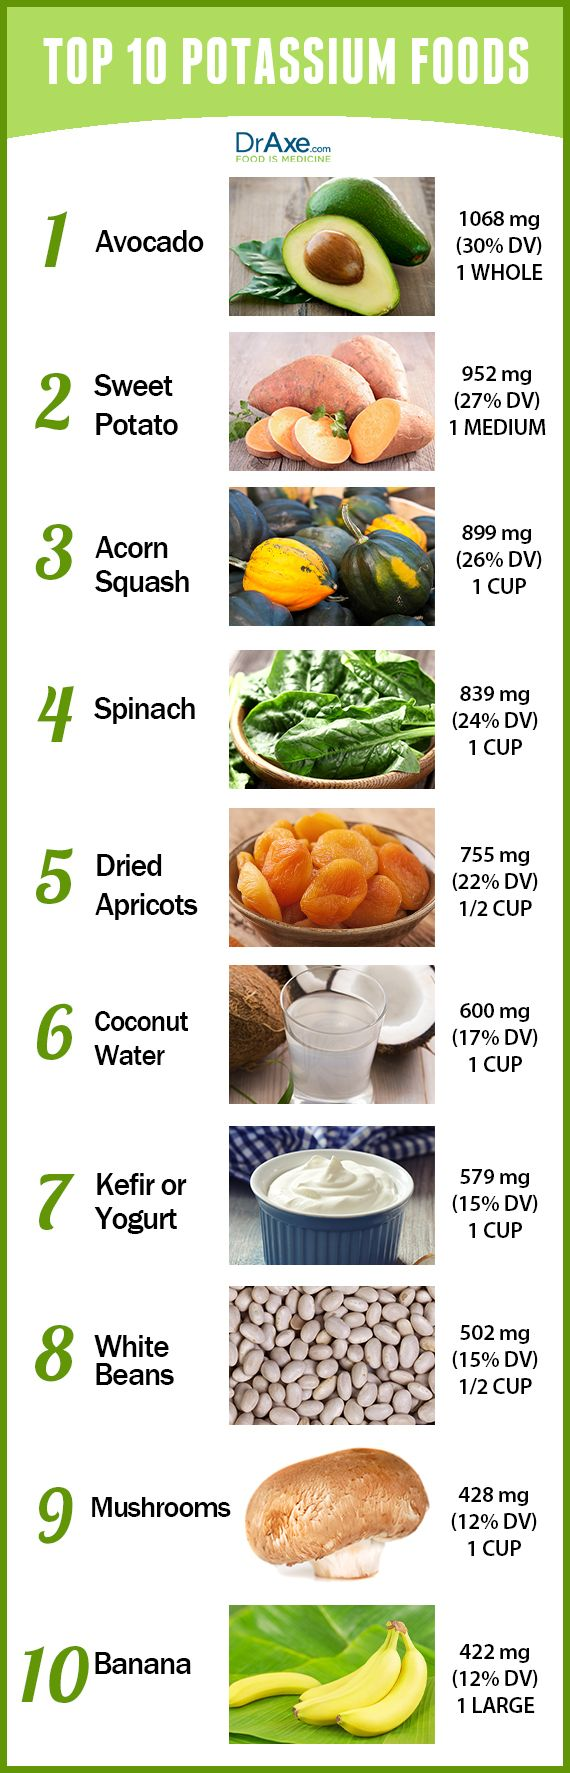 Benefits of potassium includes healthy skin, reduced cellulite, strong bones and the alleviation of menstrual cramps. Try these Top 10 Potassium Rich Foods!